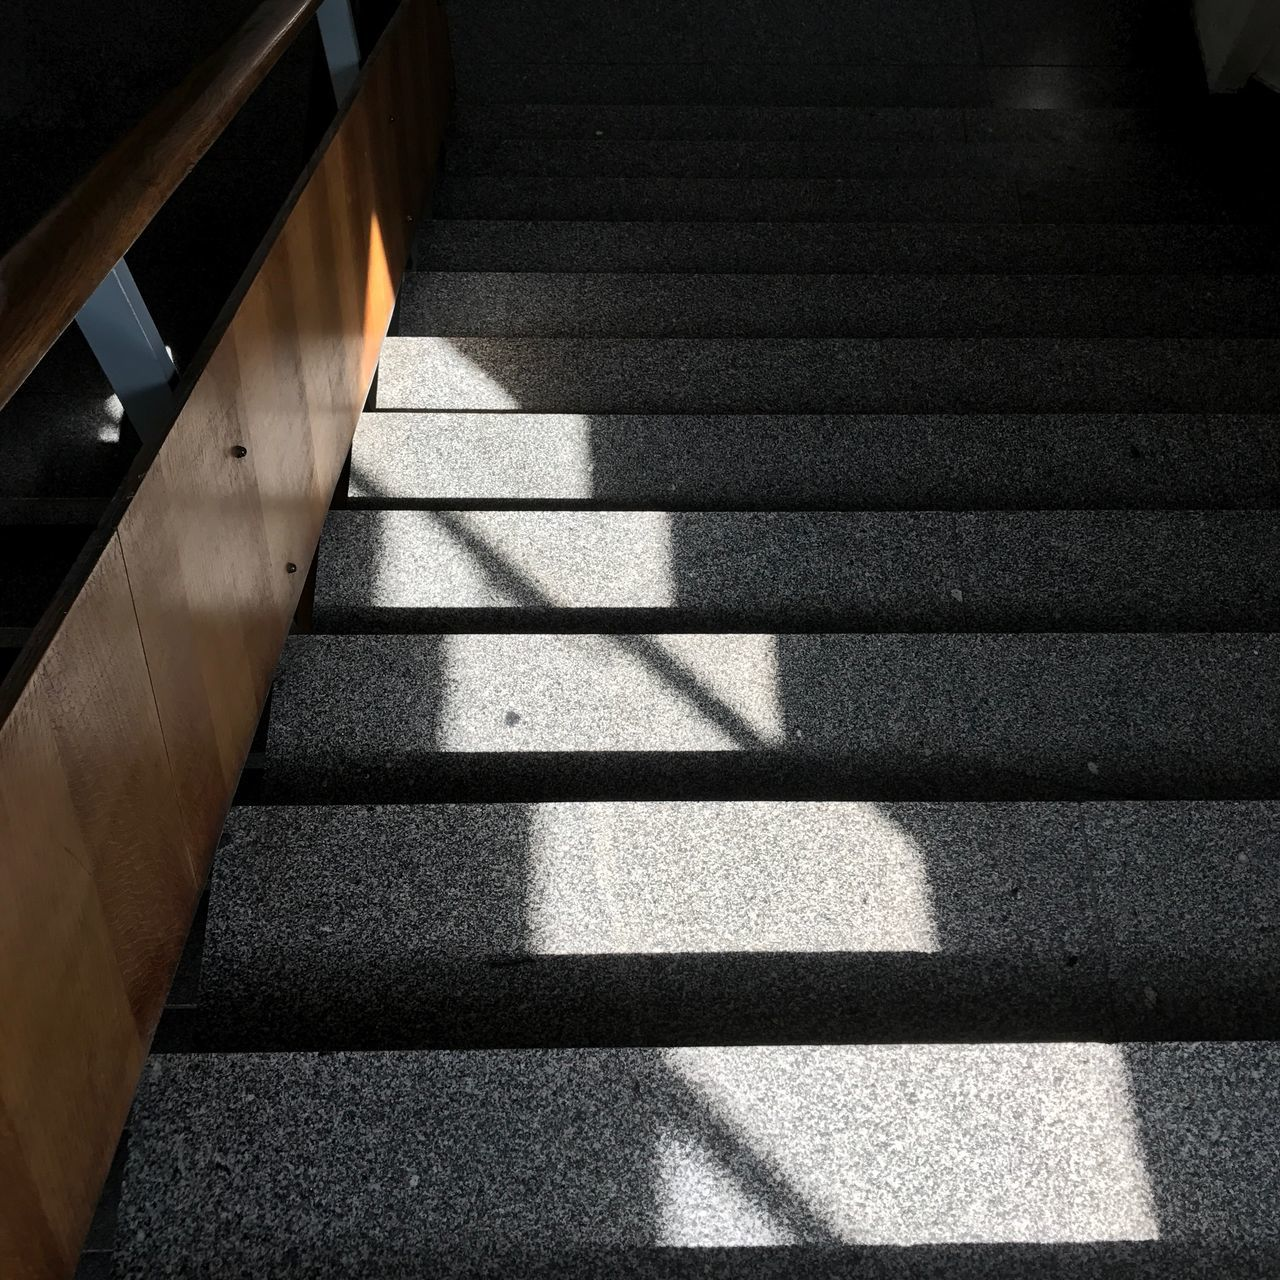 EyeEm Selects Staircase Shadow Steps And Staircases Steps Sunlight High Angle View No People Day Architecture Built Structure Indoors